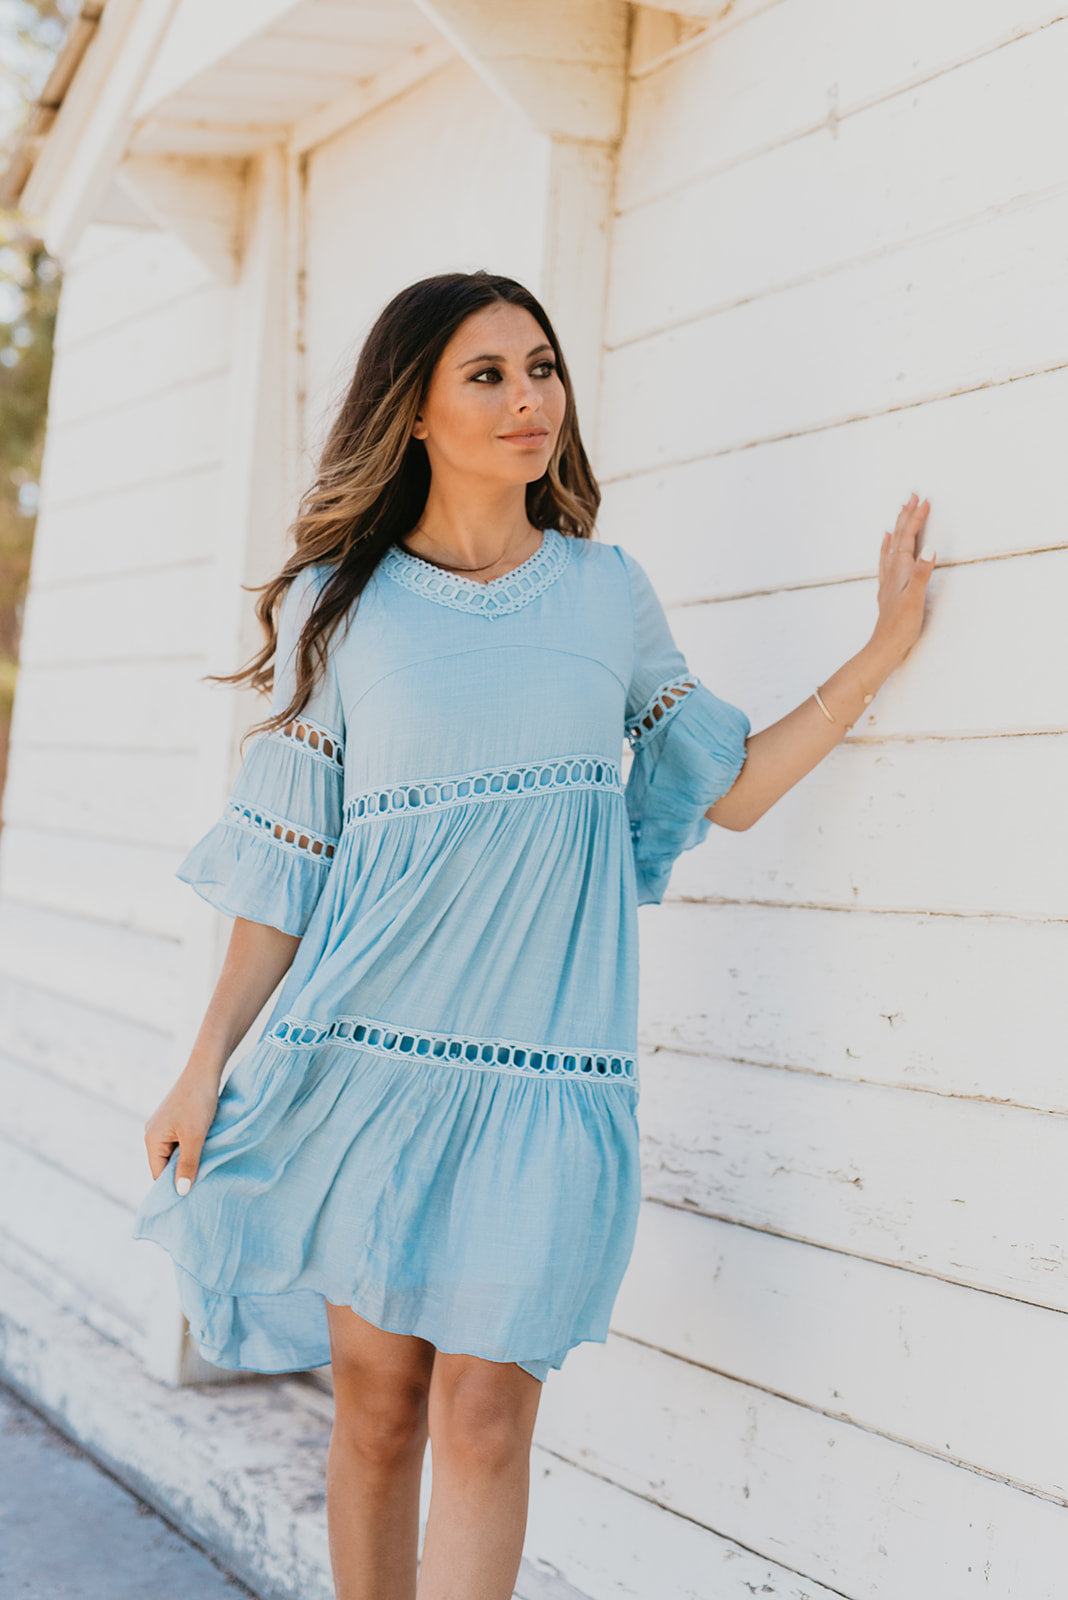 THE CABO LACE BABYDOLL DRESS IN MISTY BLUE